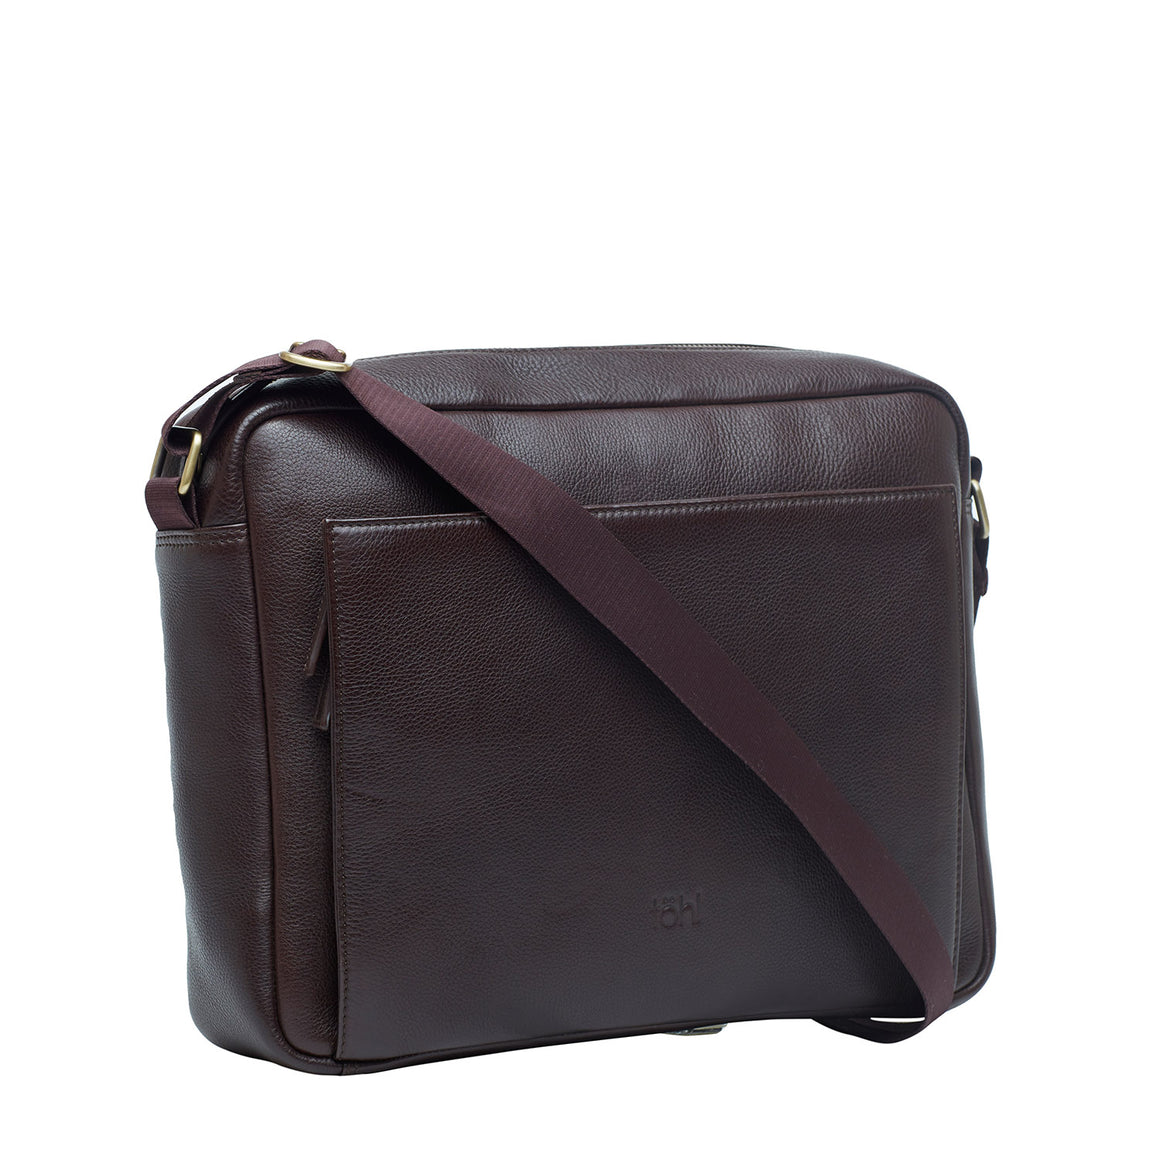 MS 0009 - TOHL MURA MEN'S CROSSBODY & MESSENGER - T MORO